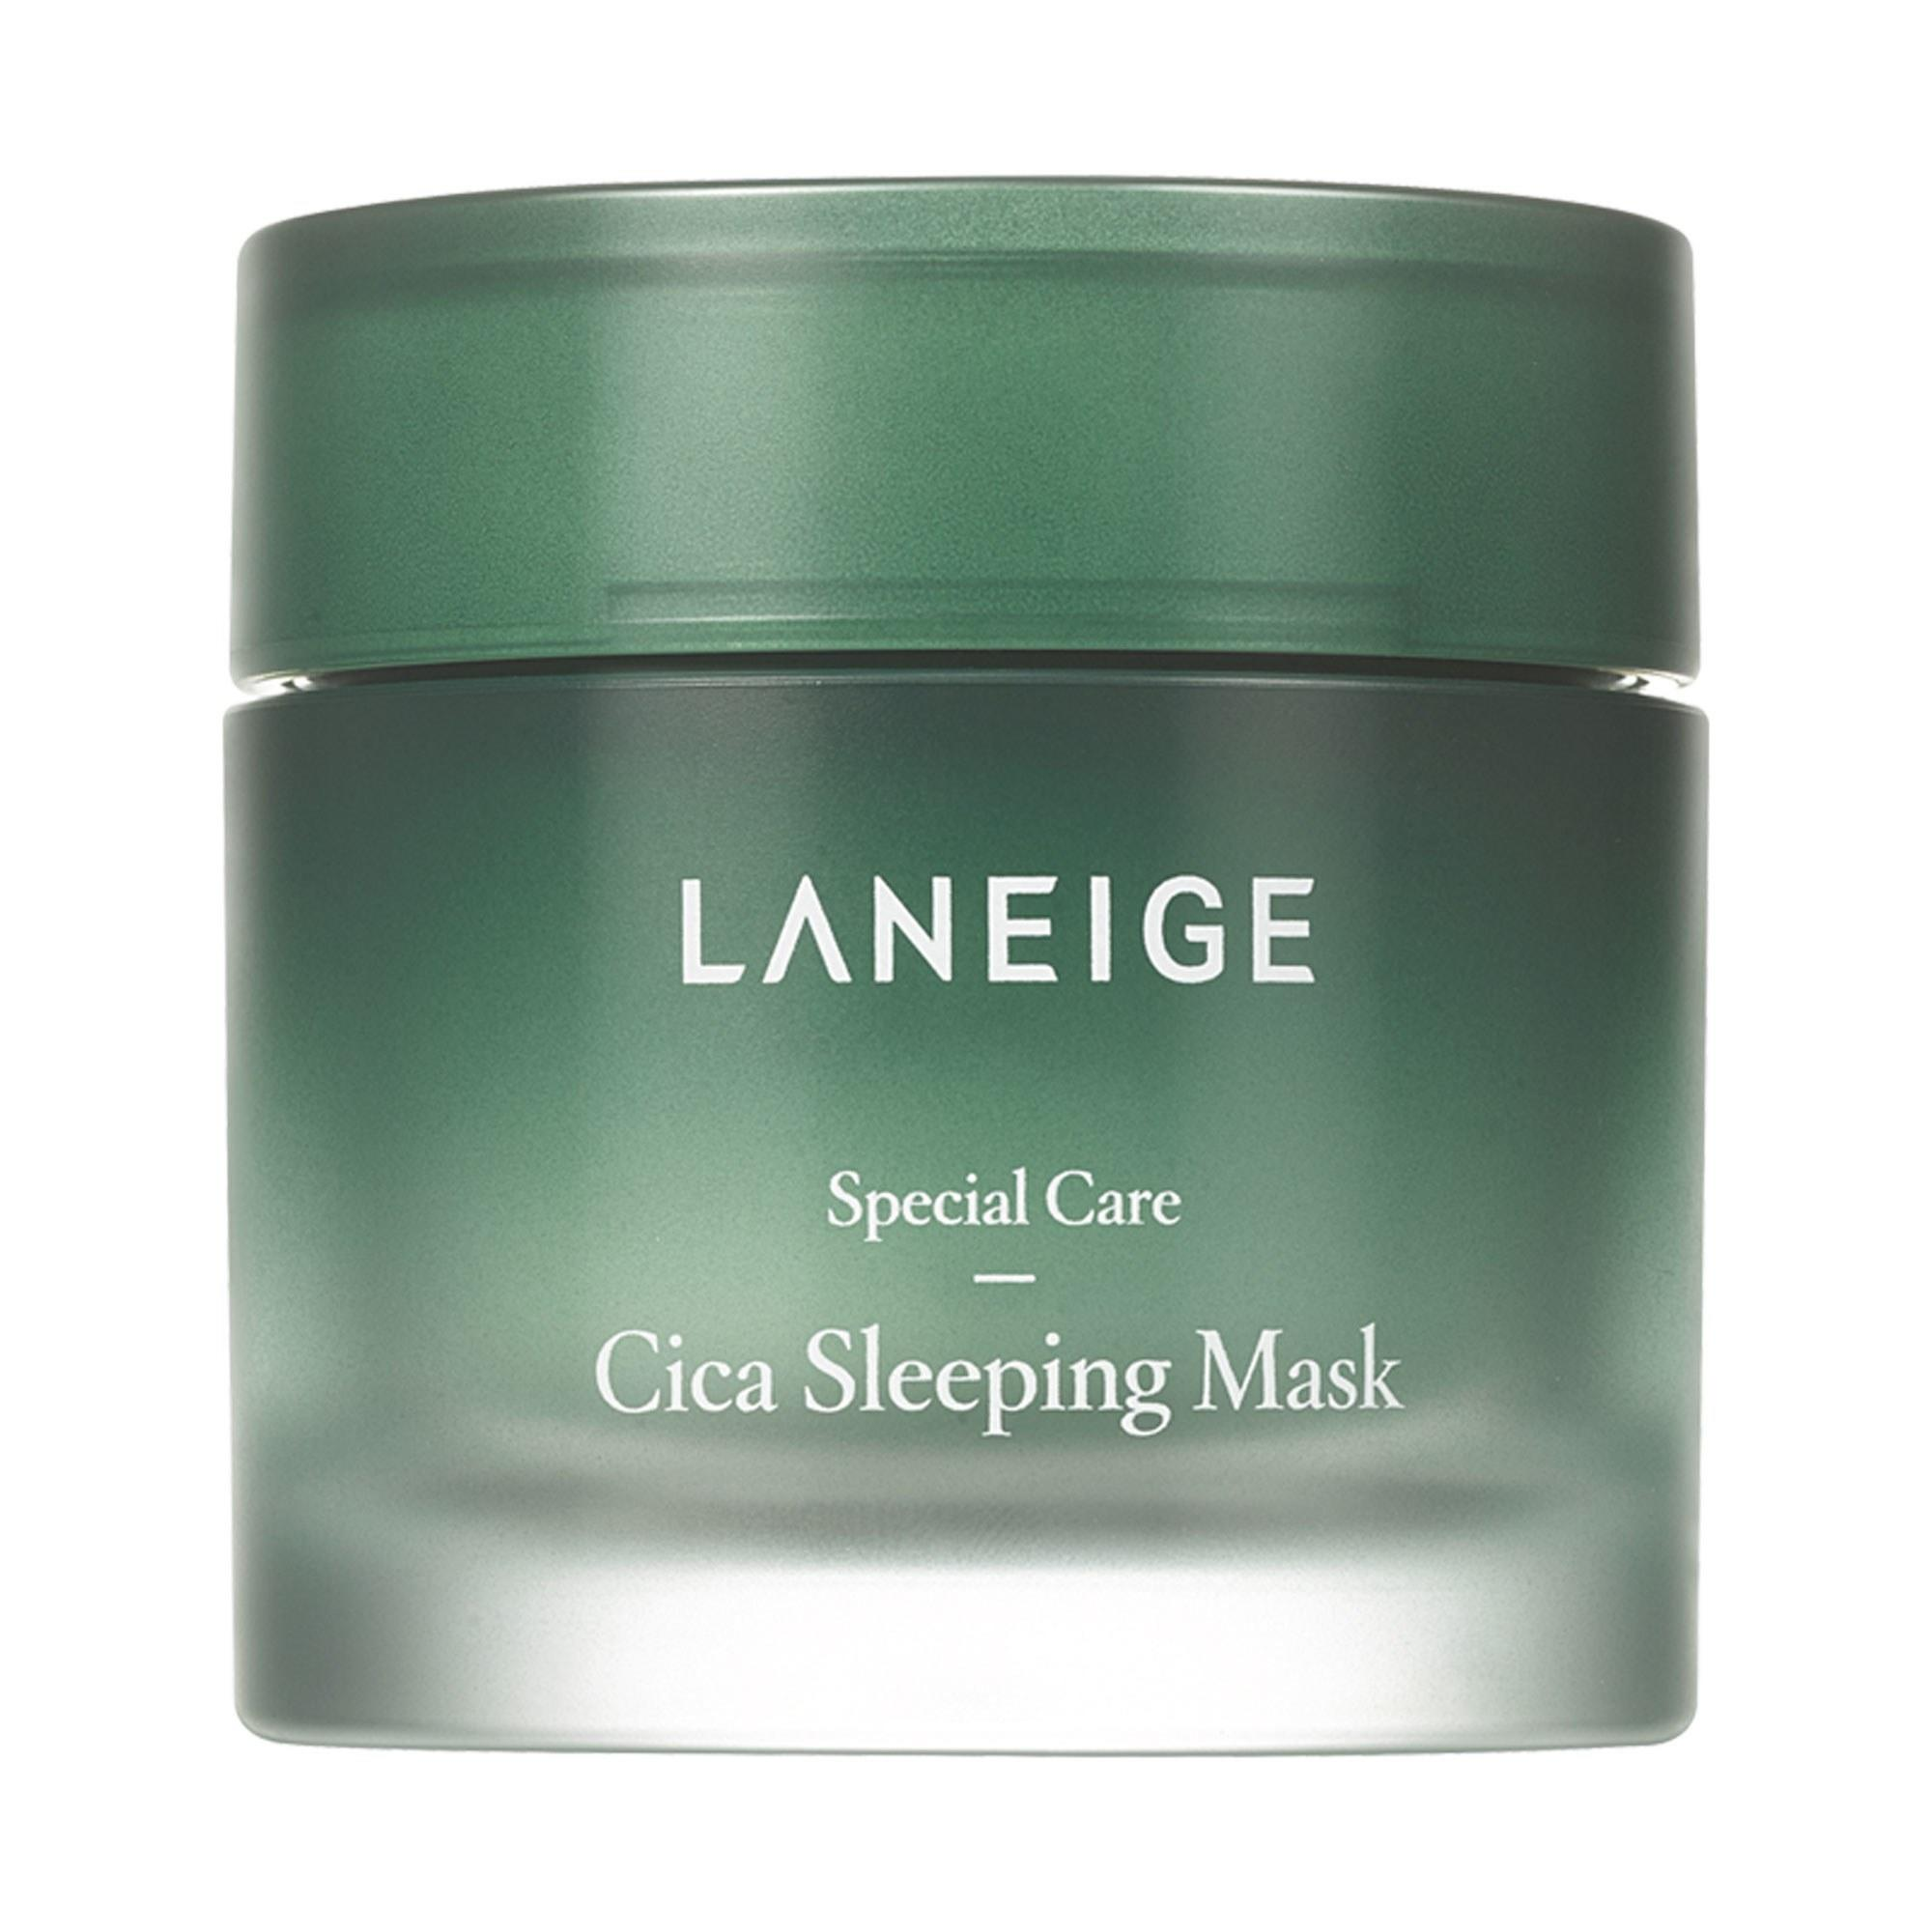 "<p>Exclusive to new K-beauty e-tailer Akoco, Laneige's Cica Sleeping Mask combines <a href=""https://www.allure.com/story/what-is-cica-ingredient-korean-beauty-skin-care?mbid=synd_yahoo_rss"" rel=""nofollow noopener"" target=""_blank"" data-ylk=""slk:skin-strengthening cica"" class=""link rapid-noclick-resp"">skin-strengthening cica</a> with soothing squalane, shea butter, and tea tree leaf oil. It feels like a cool cloth to the skin on a hot day, and after just one night's use, skin looks smooth, plump and super-moisturized.</p> <p>$32 (<a href=""https://akoco.com/collections/laneige/products/laneige-cica-sleeping-mask"" rel=""nofollow noopener"" target=""_blank"" data-ylk=""slk:Shop Now"" class=""link rapid-noclick-resp"">Shop Now</a>)</p>"